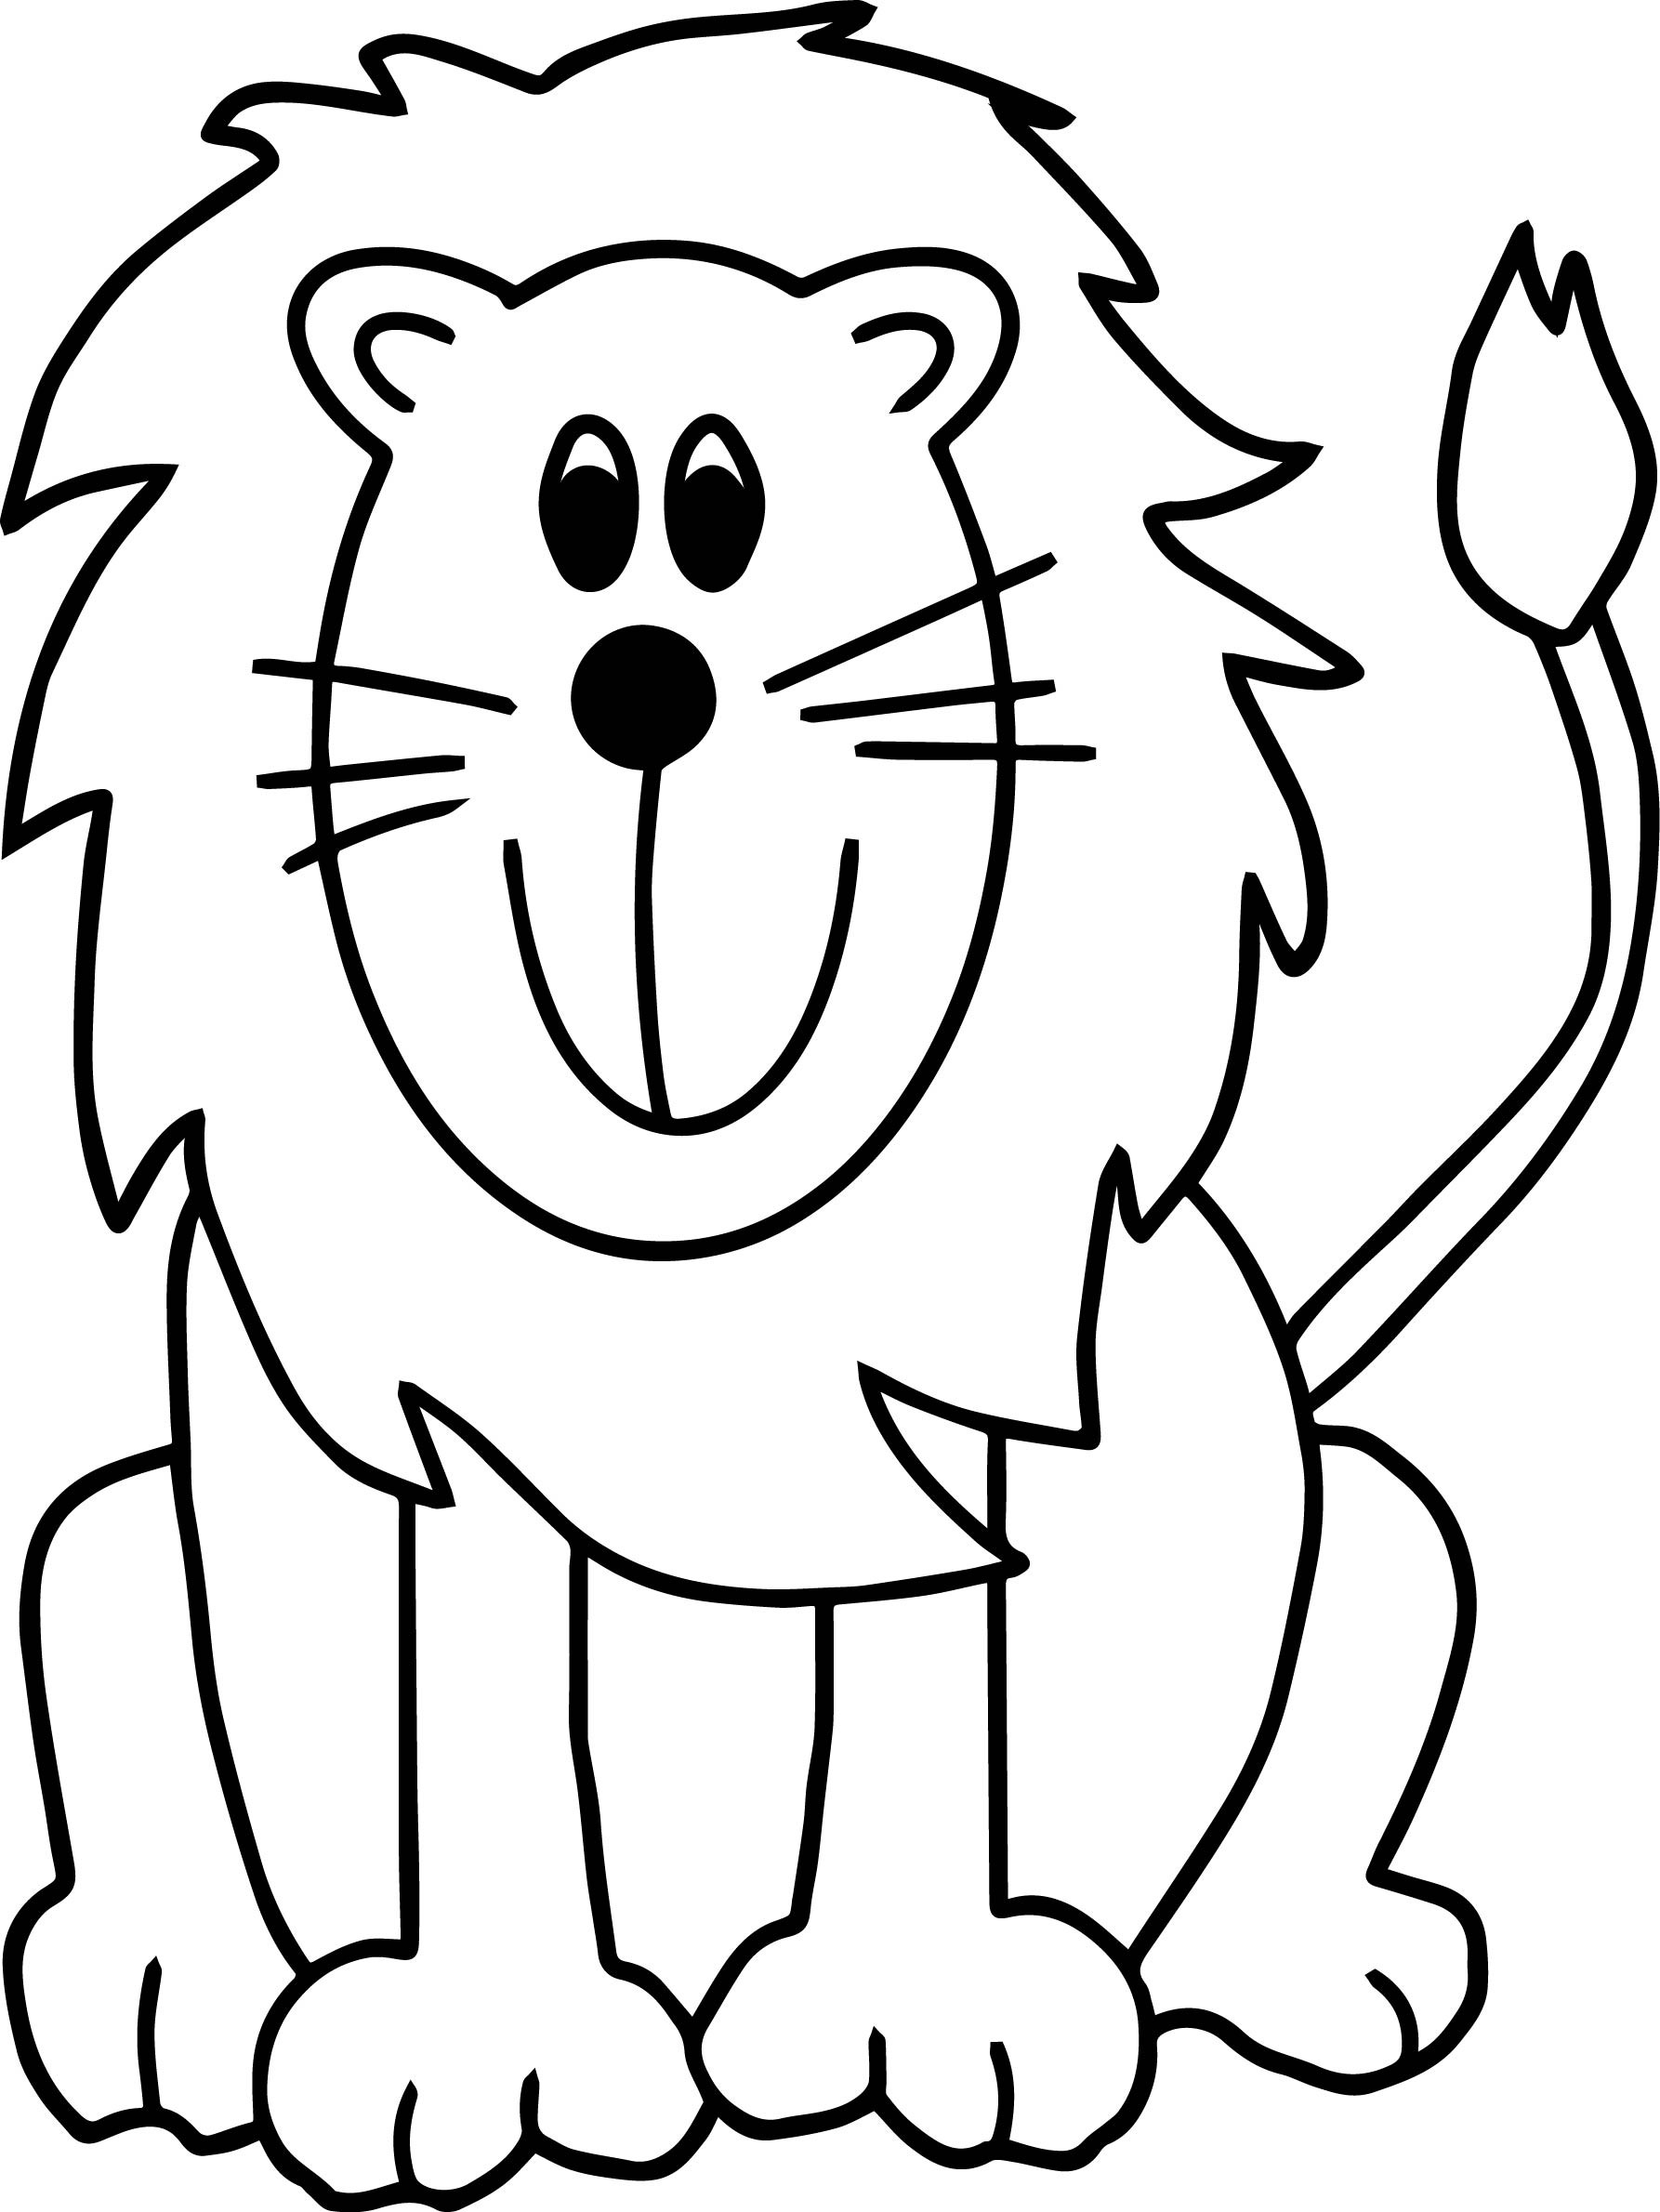 zoo animal coloring pages for preschool giraffe preschool coloring pages zoo animals zoo animal for preschool pages coloring zoo animal